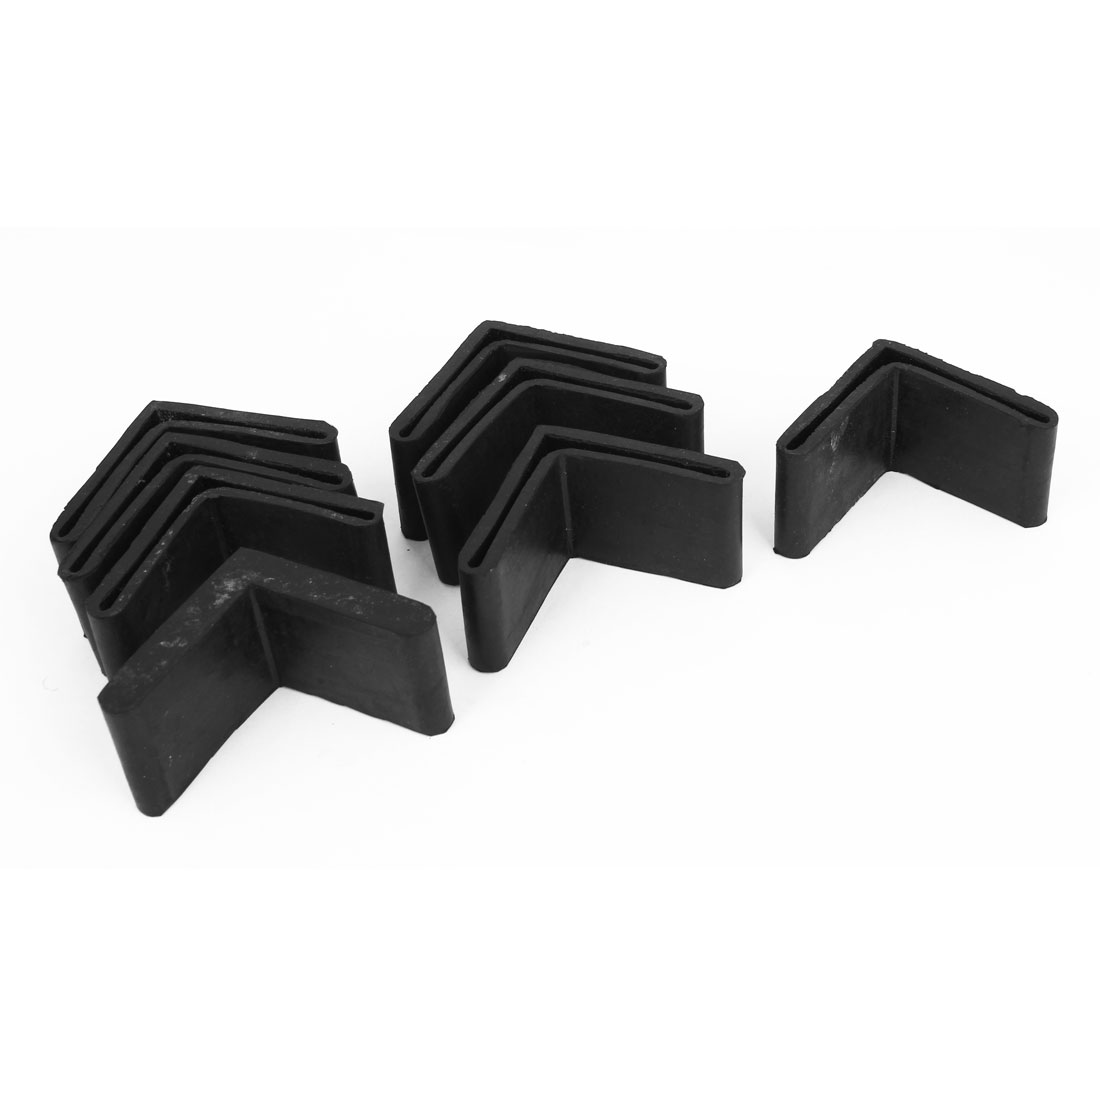 8 Pcs Black Rubber L Shaped Furniture Right Angle Foot Leg Covers Pad 50mmx50mm